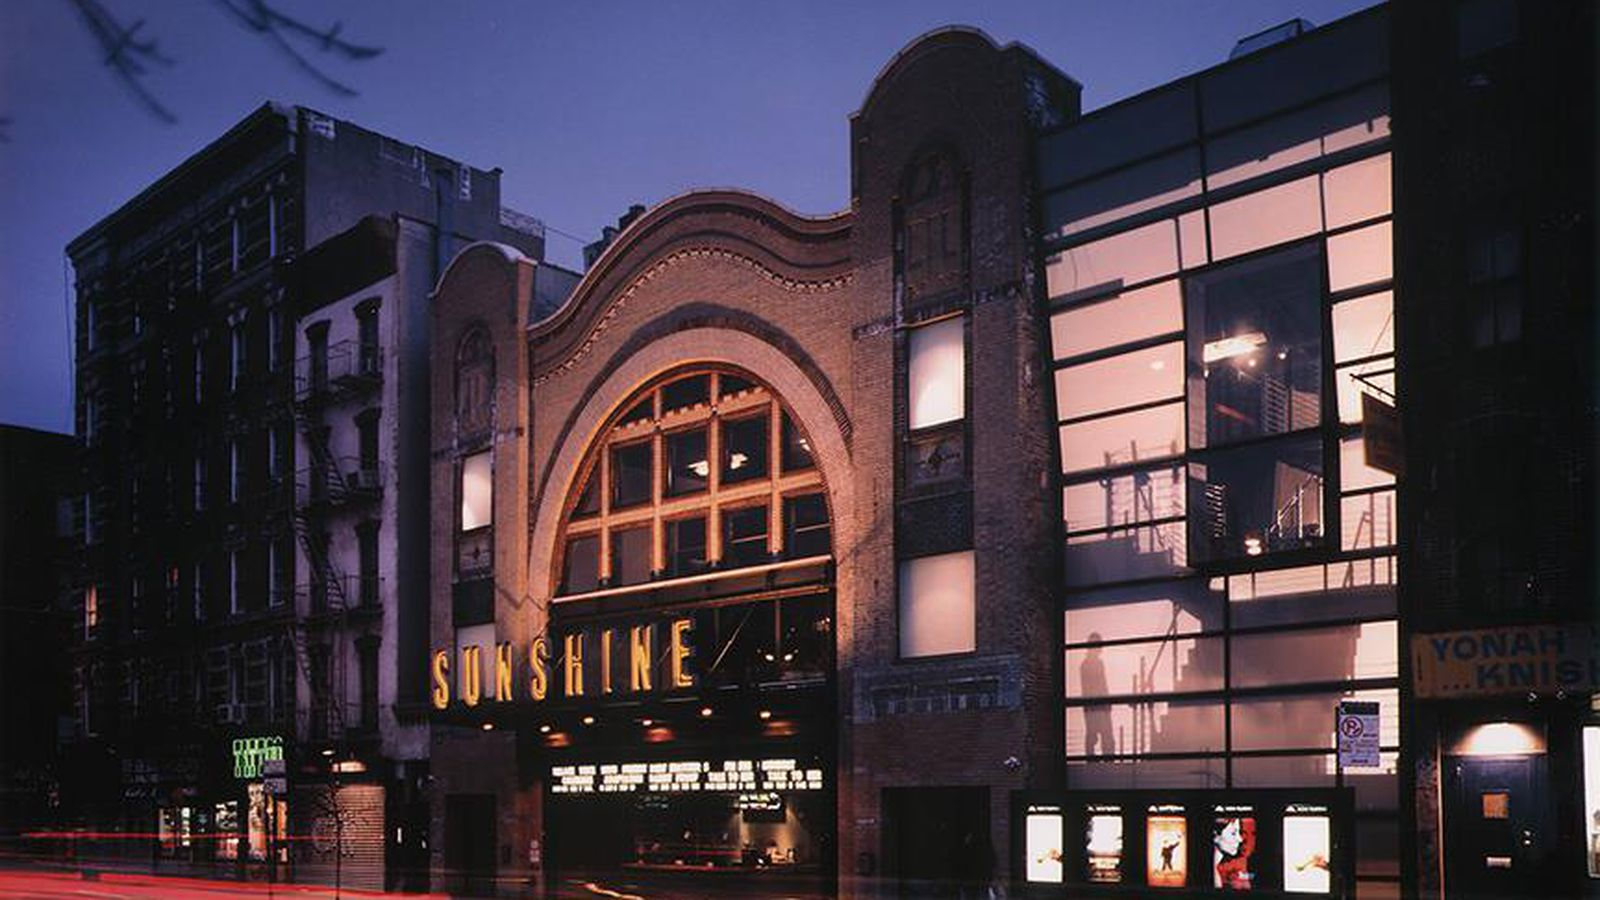 Lower East Side's Sunshine Cinema may have found a buyer ...